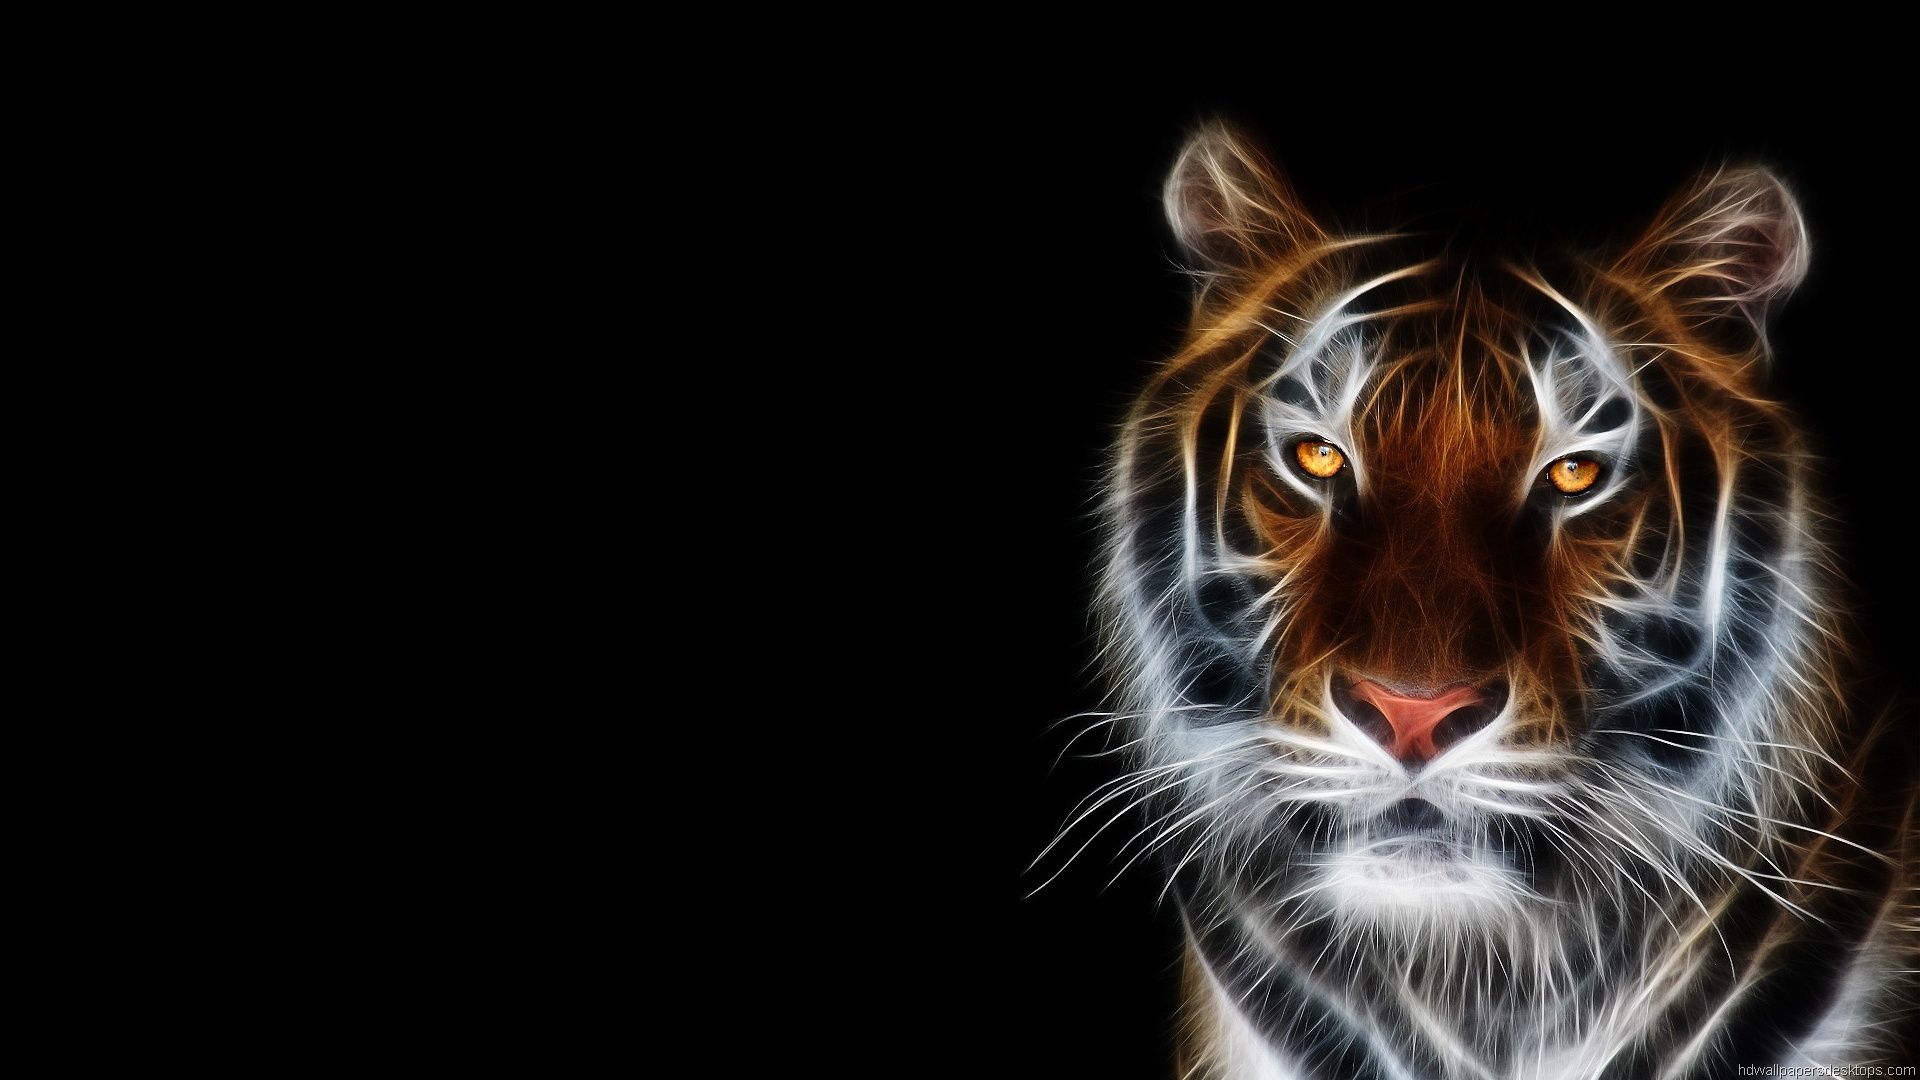 Animals Wallpapers HD Widescreen Desktop Backgrounds 1920x1080 1920x1080